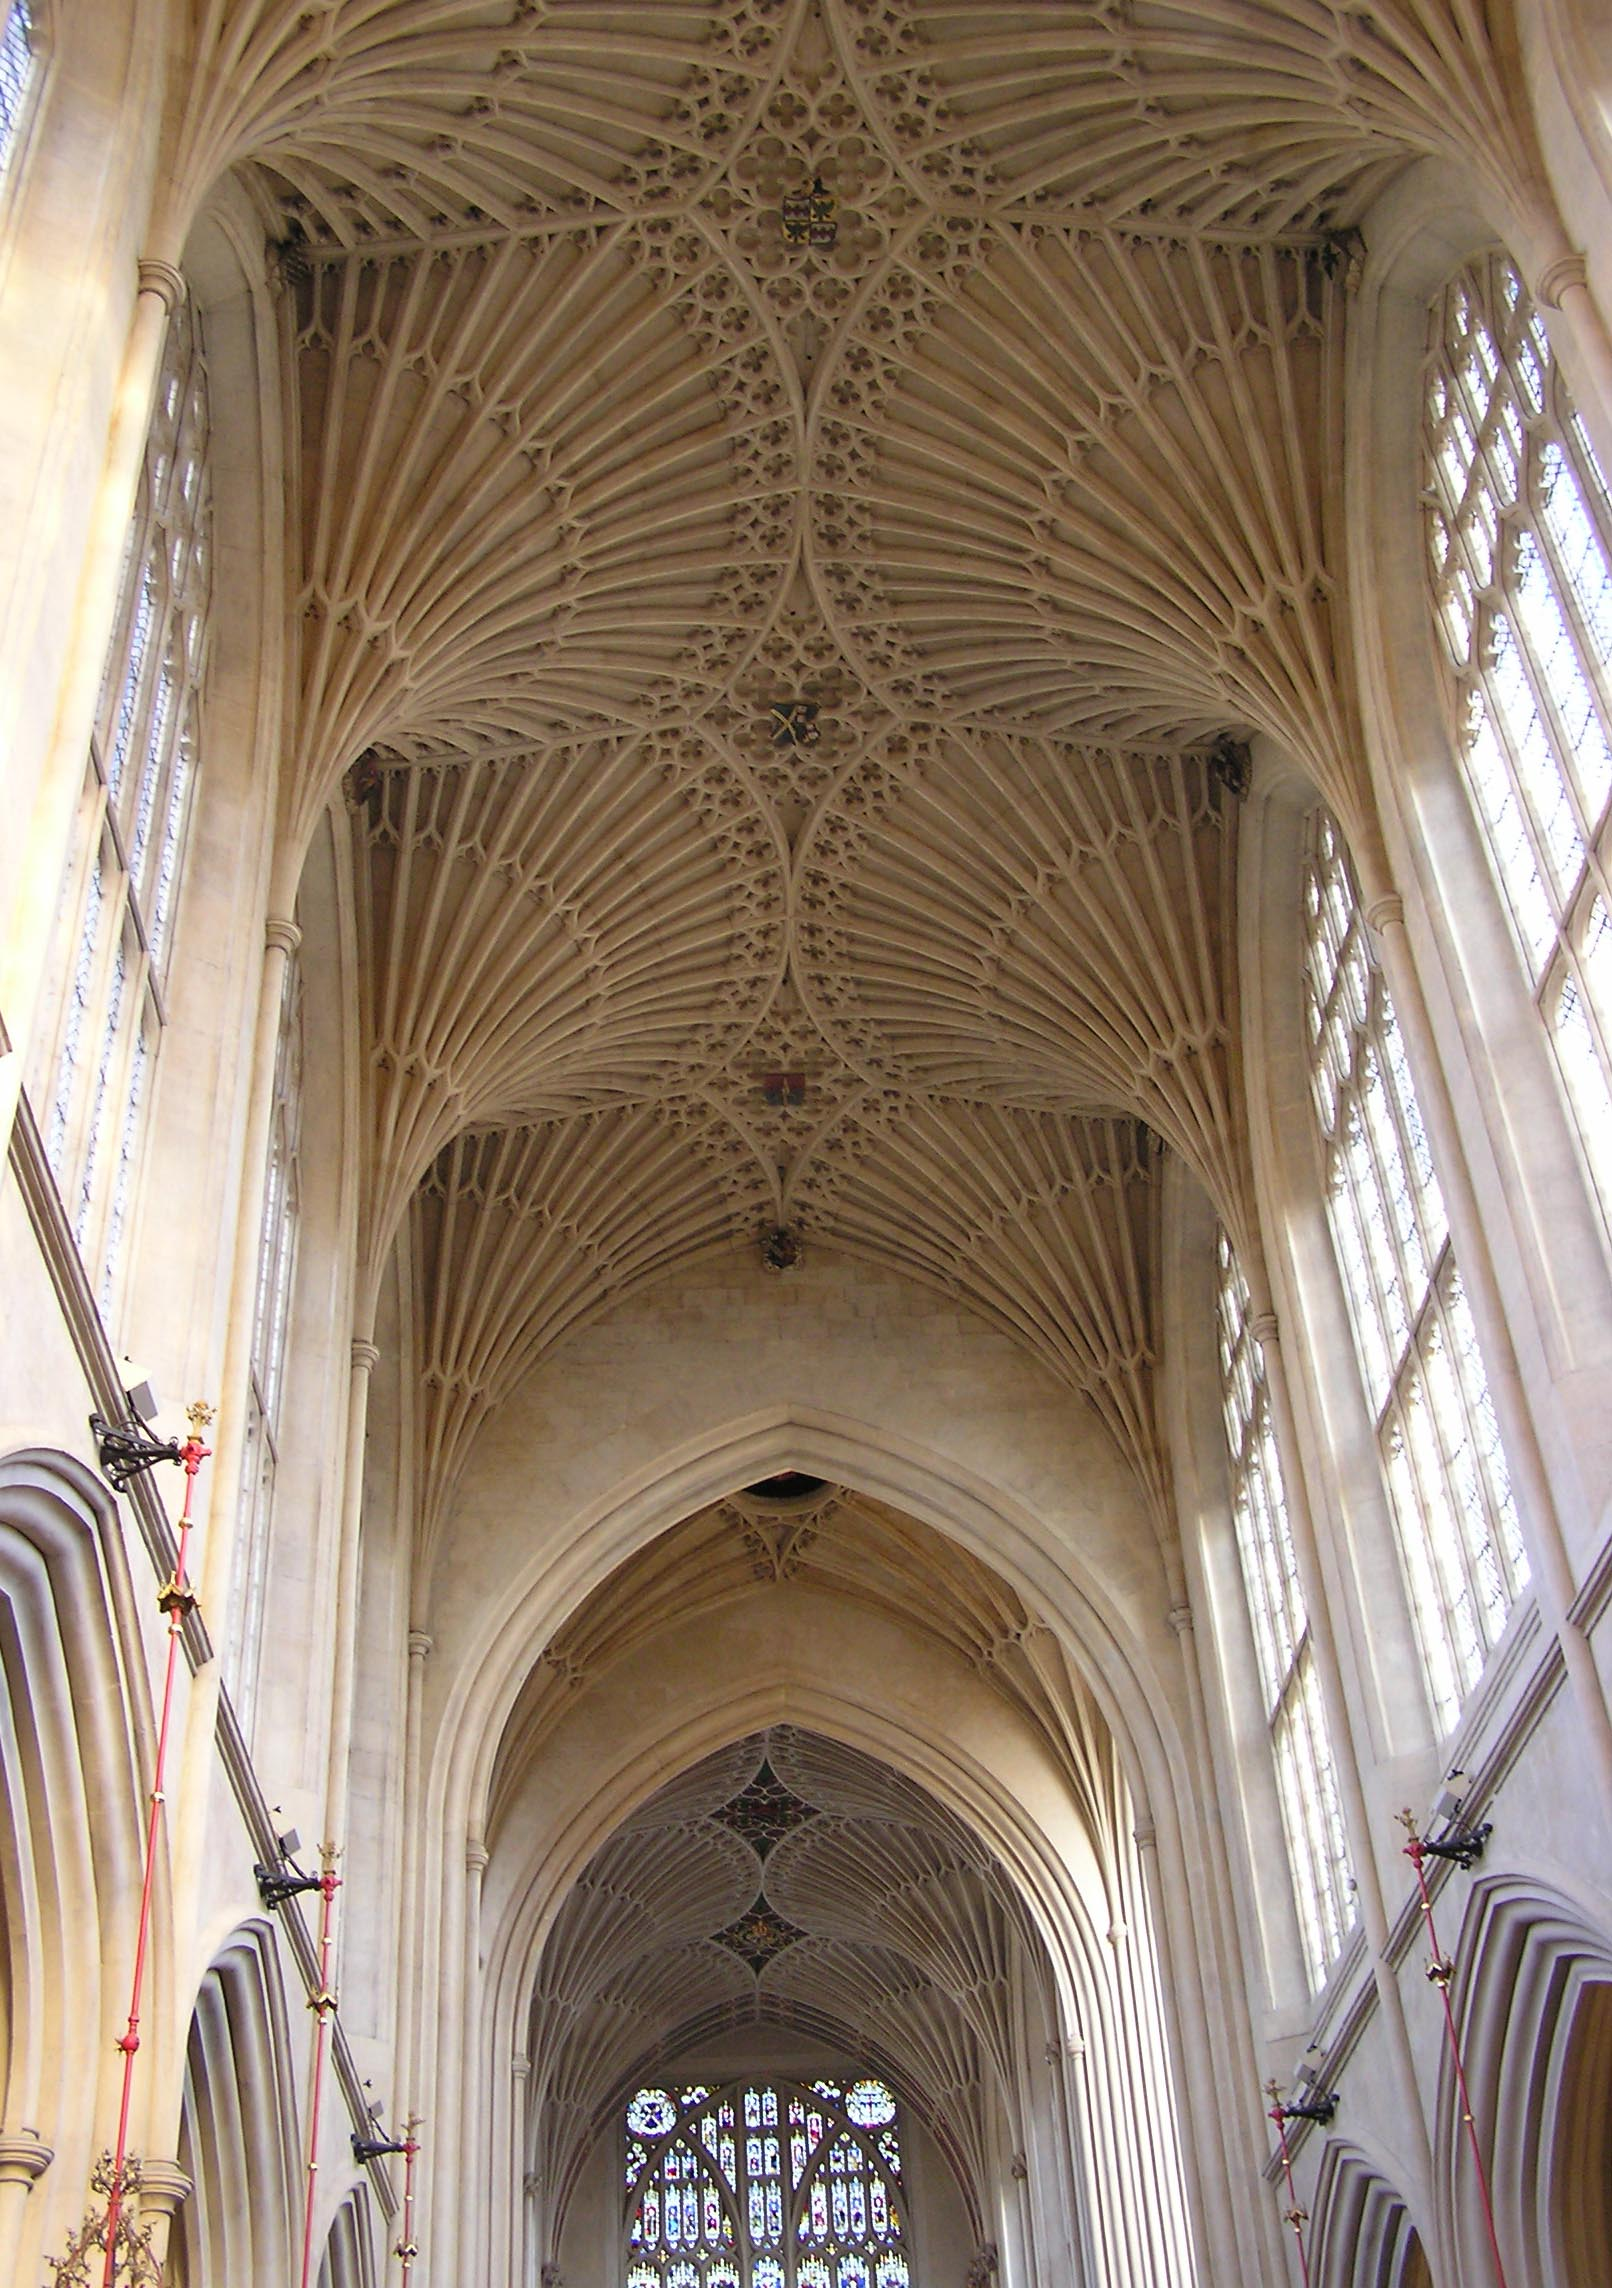 File:Bath.abbey.fan.vault.arp.jpg - Wikimedia Commons